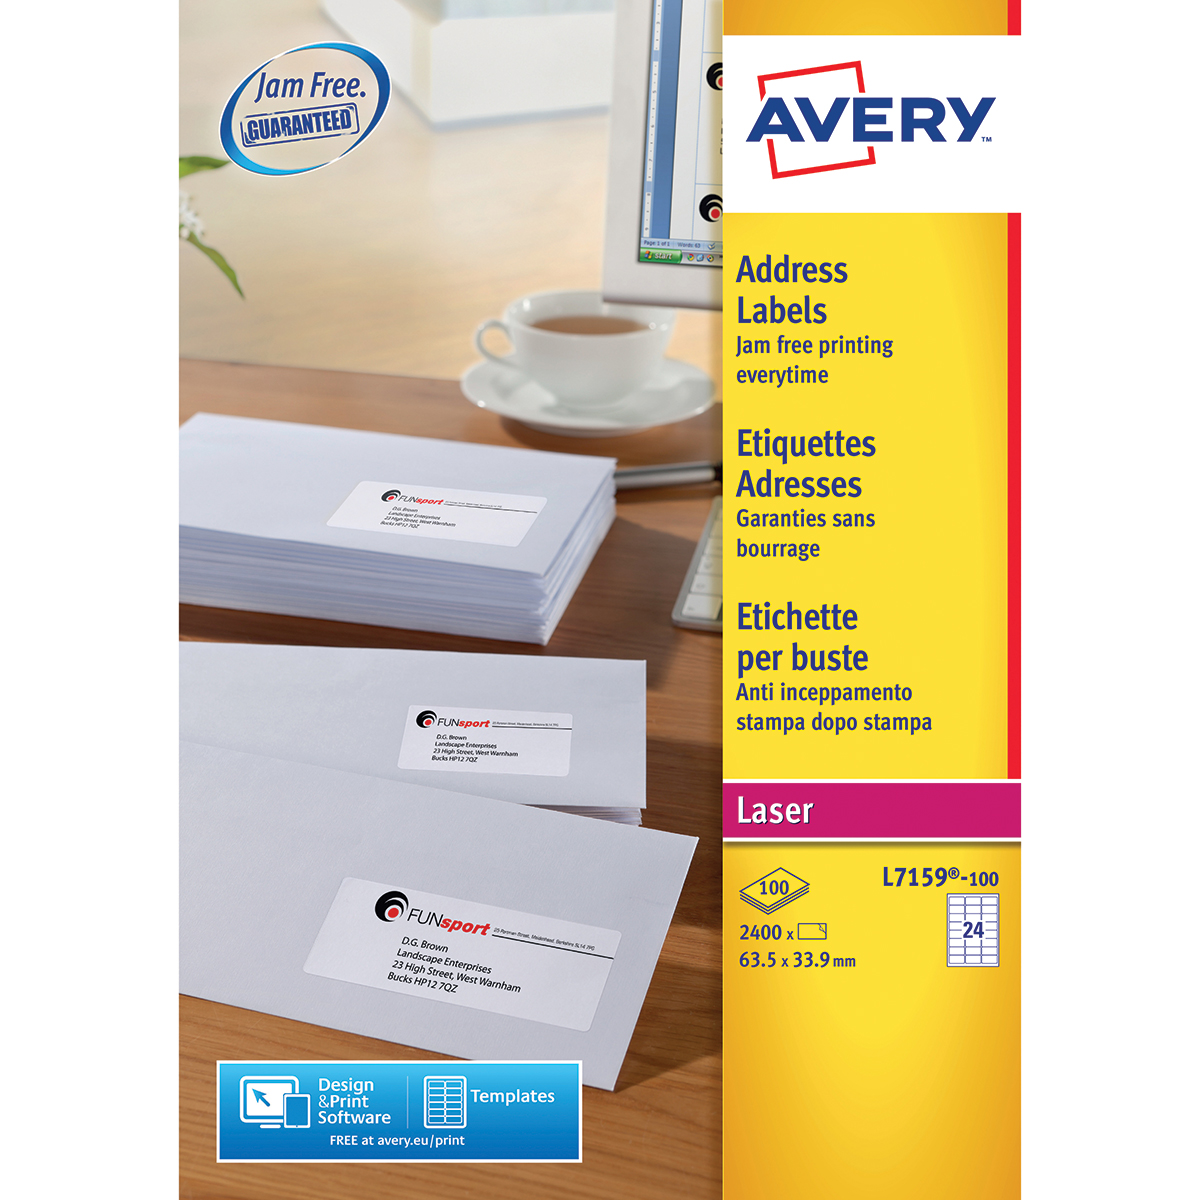 Avery L7159-100 Address Labels 100 sheets - 24 Labels per Sheet